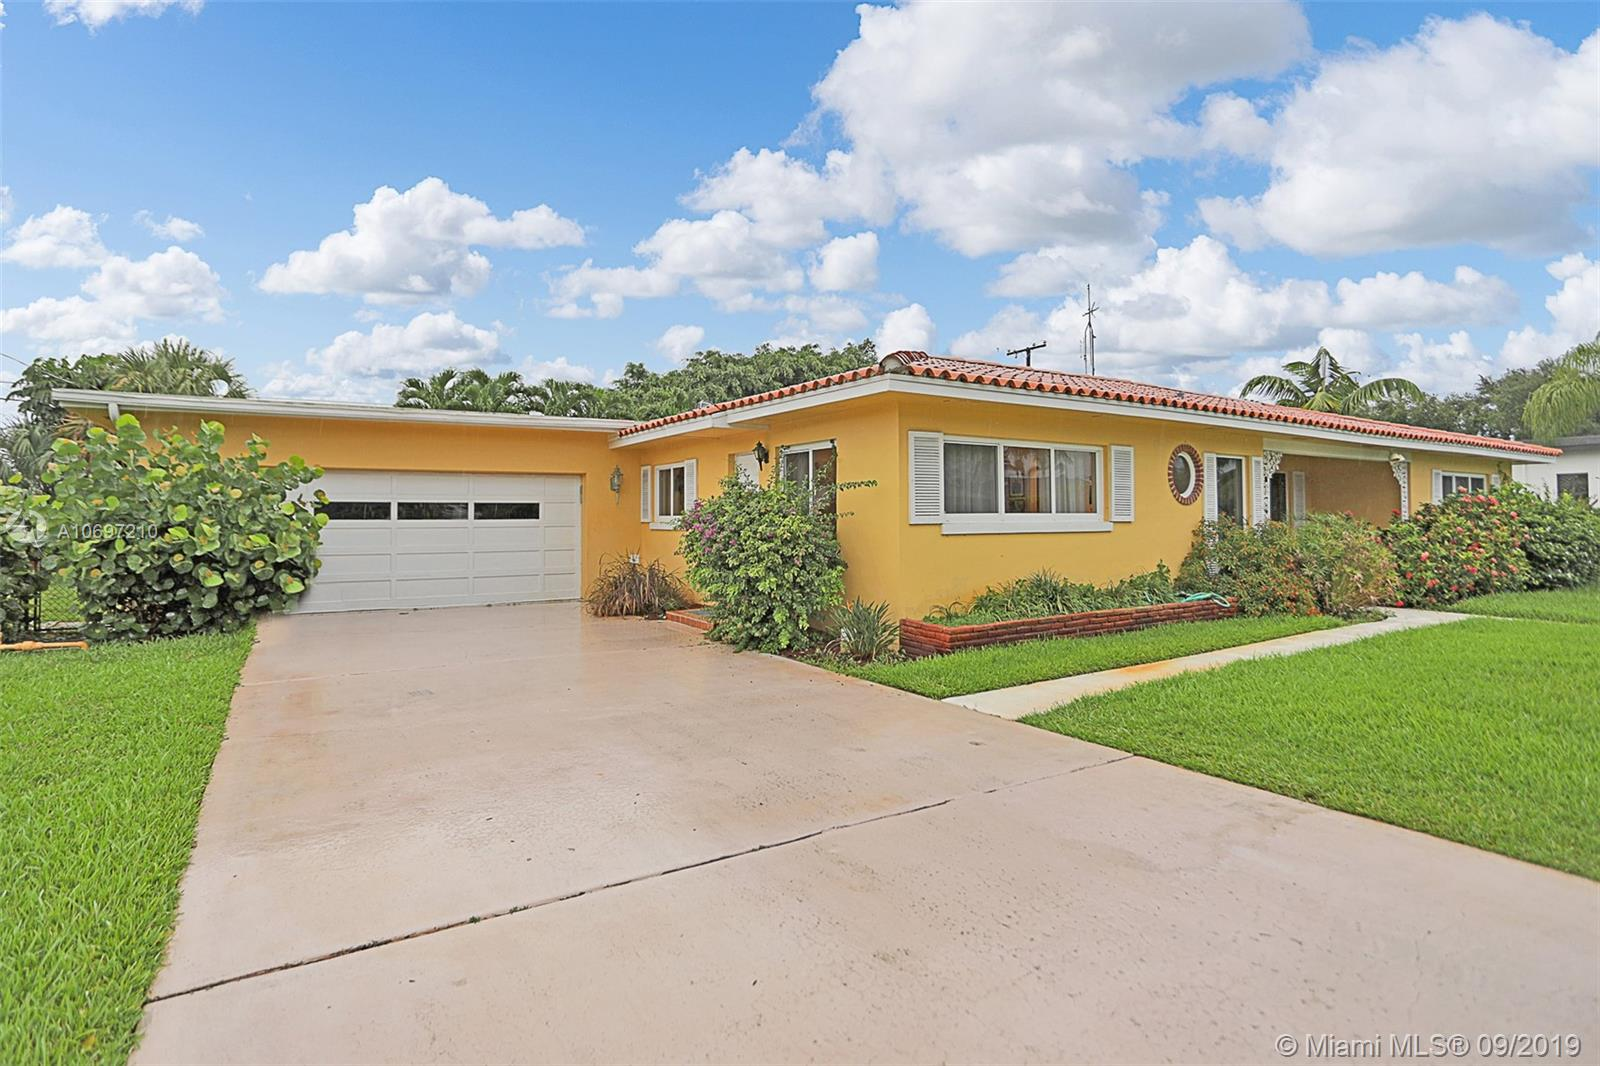 317 Edmor Rd West Palm Beach, FL 33405